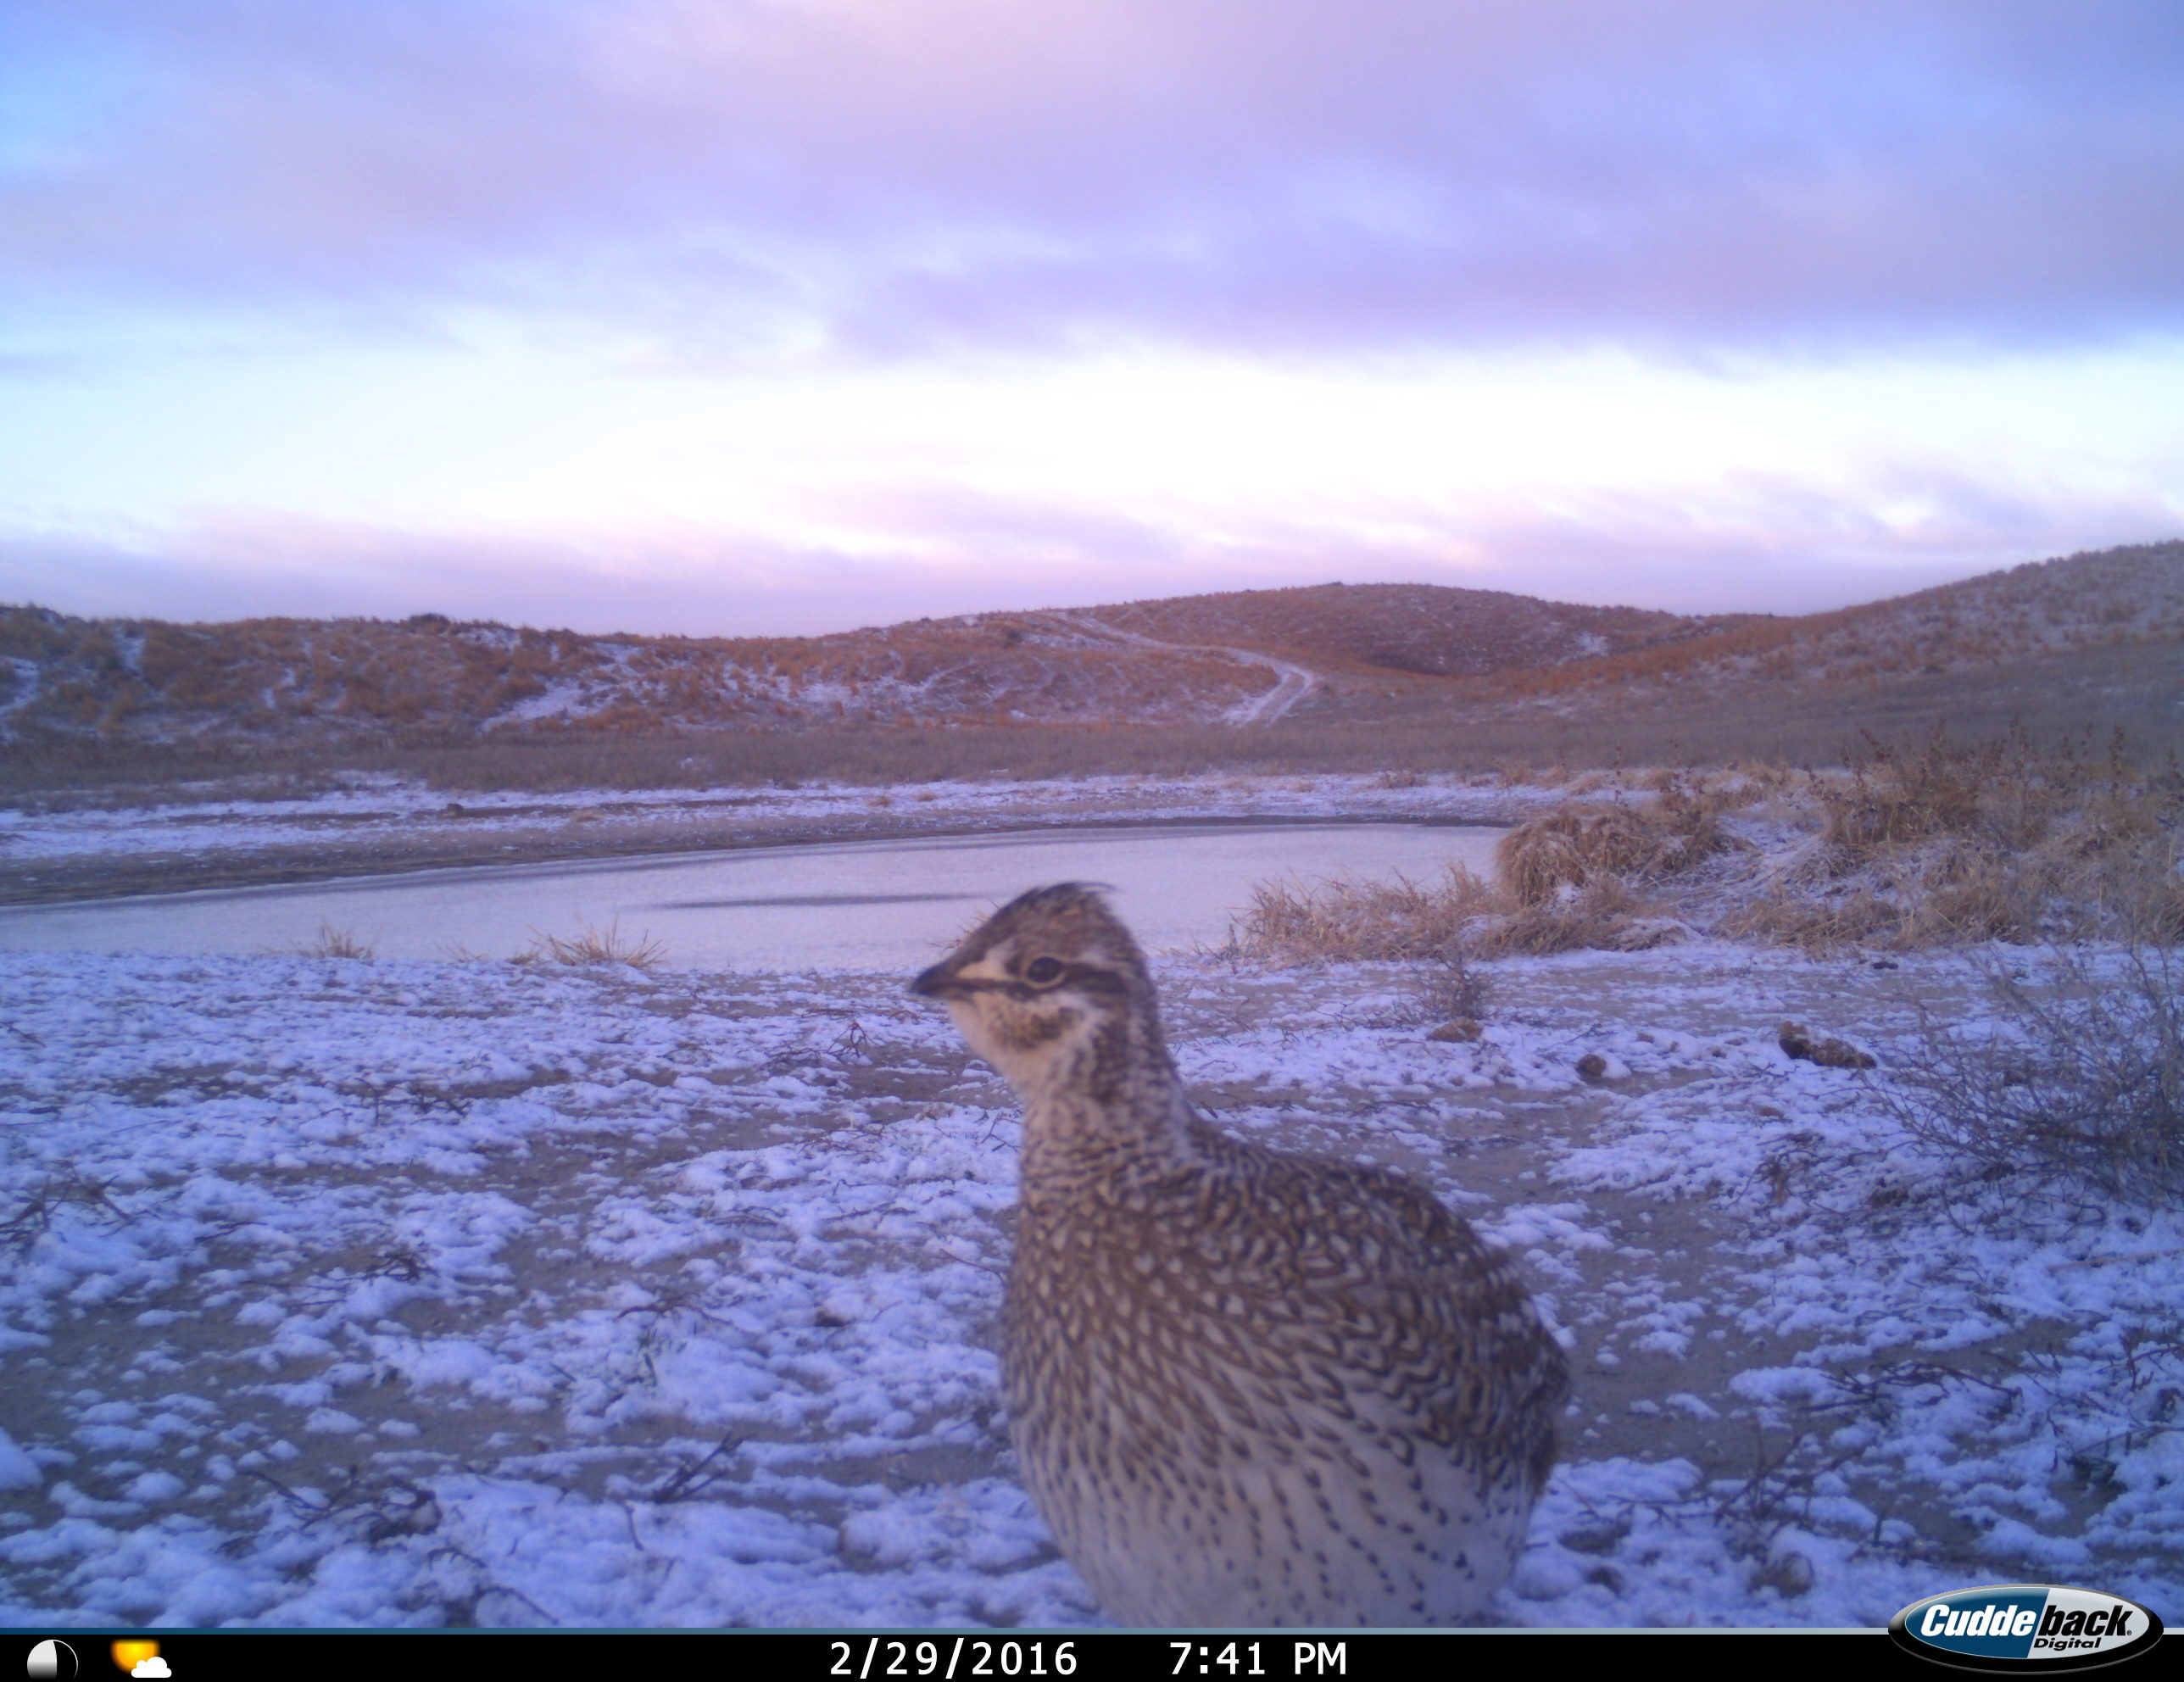 A prairie grouse at dawn near a watering hole, caught by a trail camera.